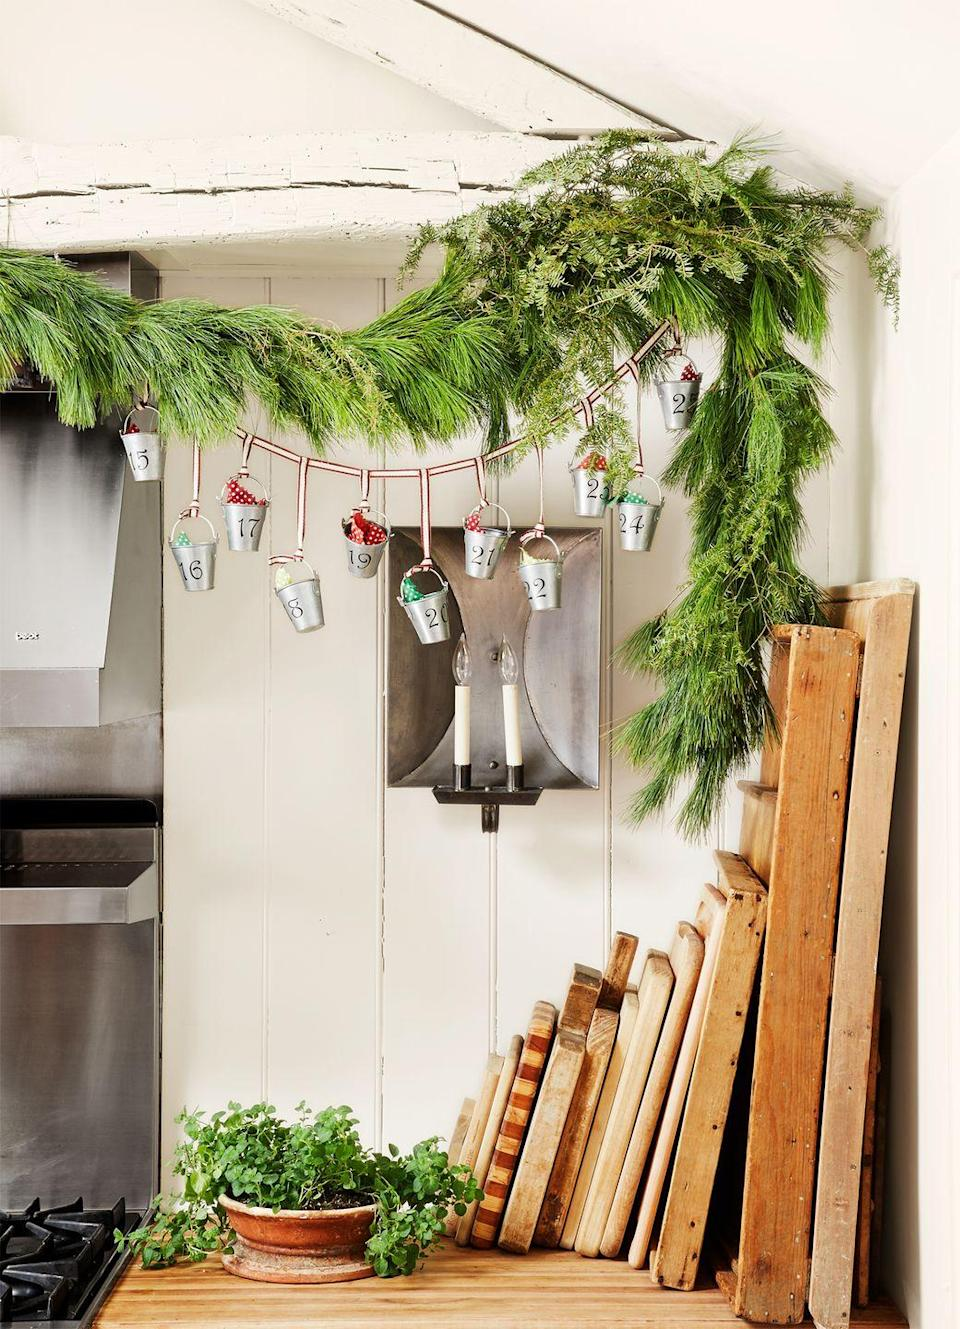 <p>Turn a kitchen garland into an Advent calendar. Attach a ribbon across it and then hang little tin containers labeled with the day of the month and fill them with treats. It'll make the countdown to Christmas even more exciting. </p>